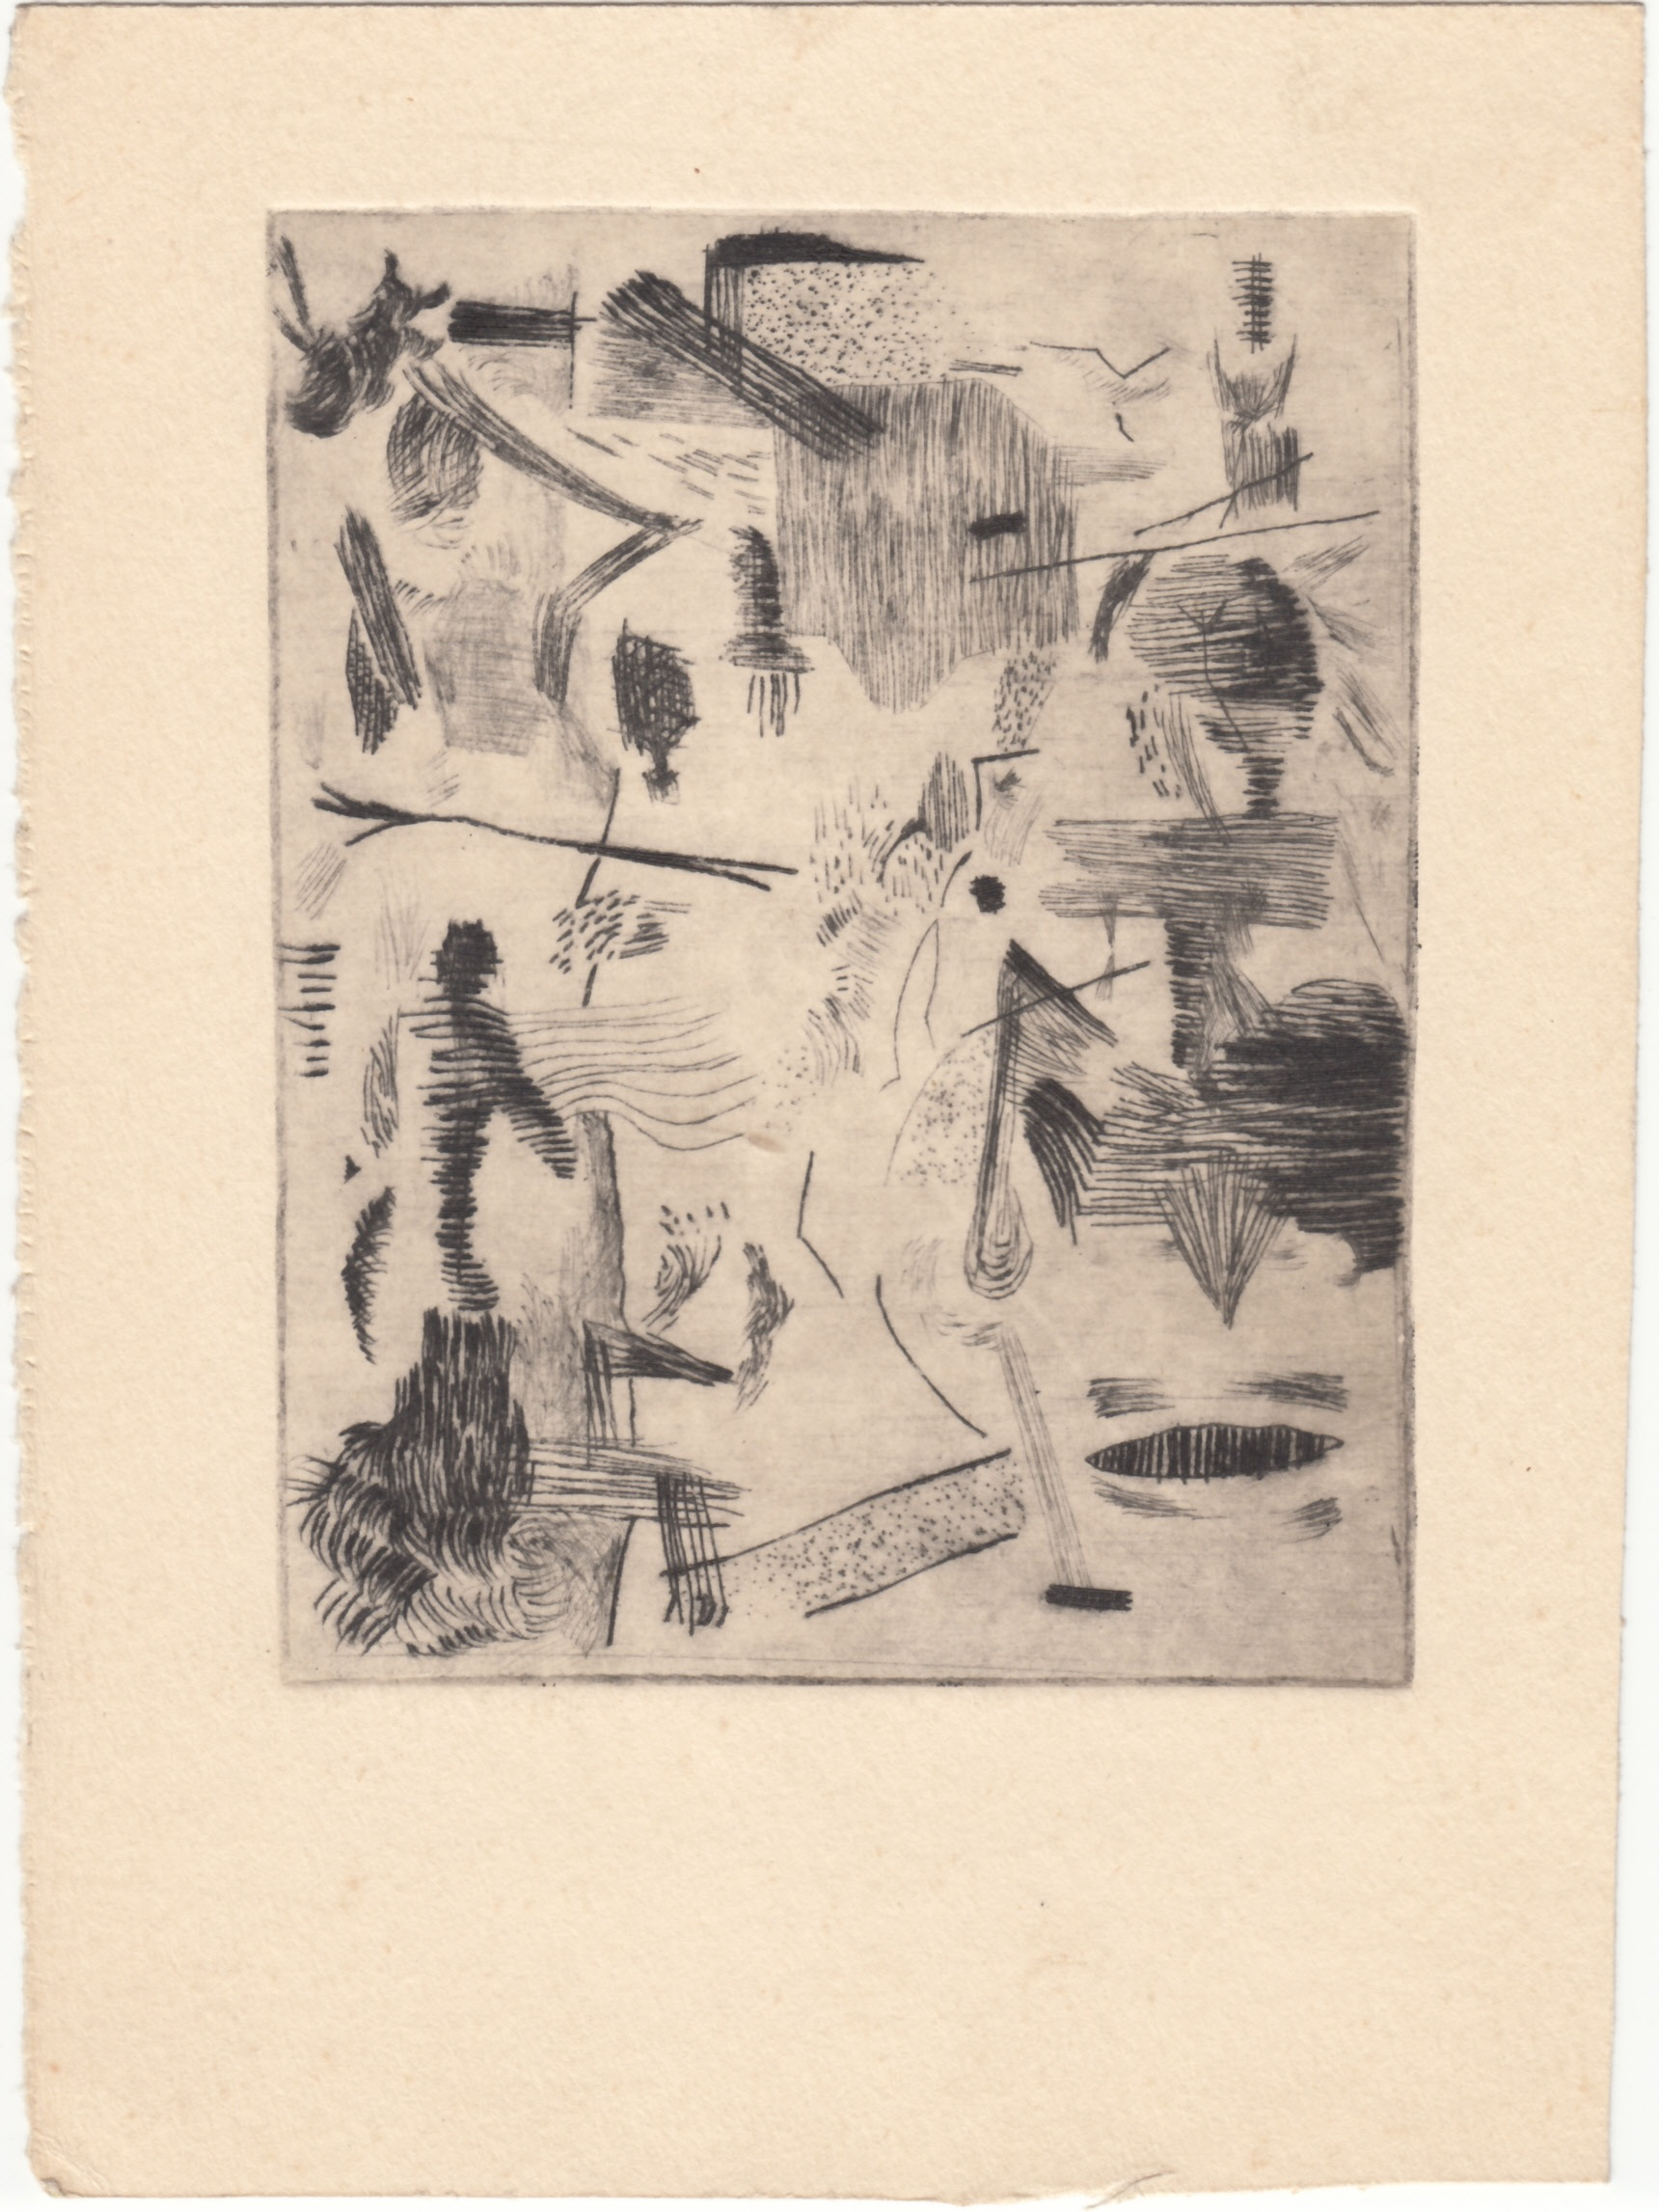 Malcolm McClain, Untitled, c. 1952, etching on paper, 7.5 x 5.5 inches